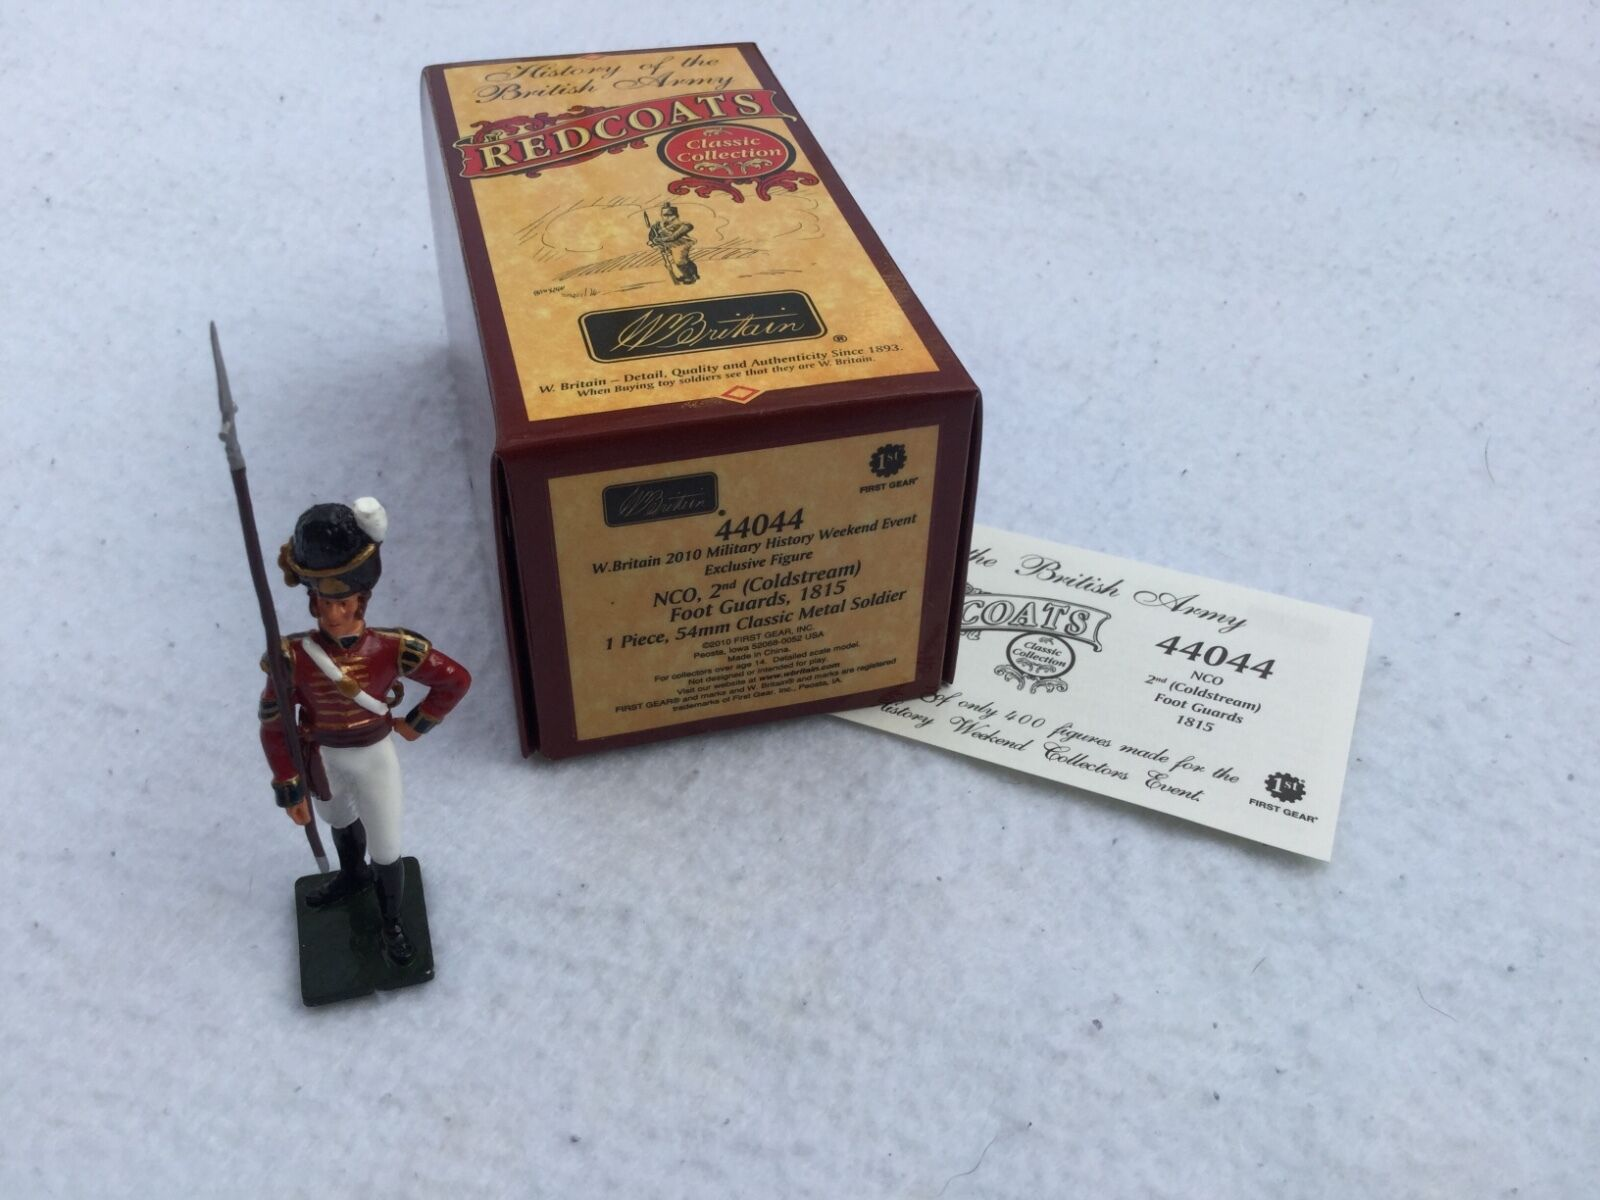 William Britains Redcoats NCO 2nd Coldstream Foot Guards 44044 New Boxed